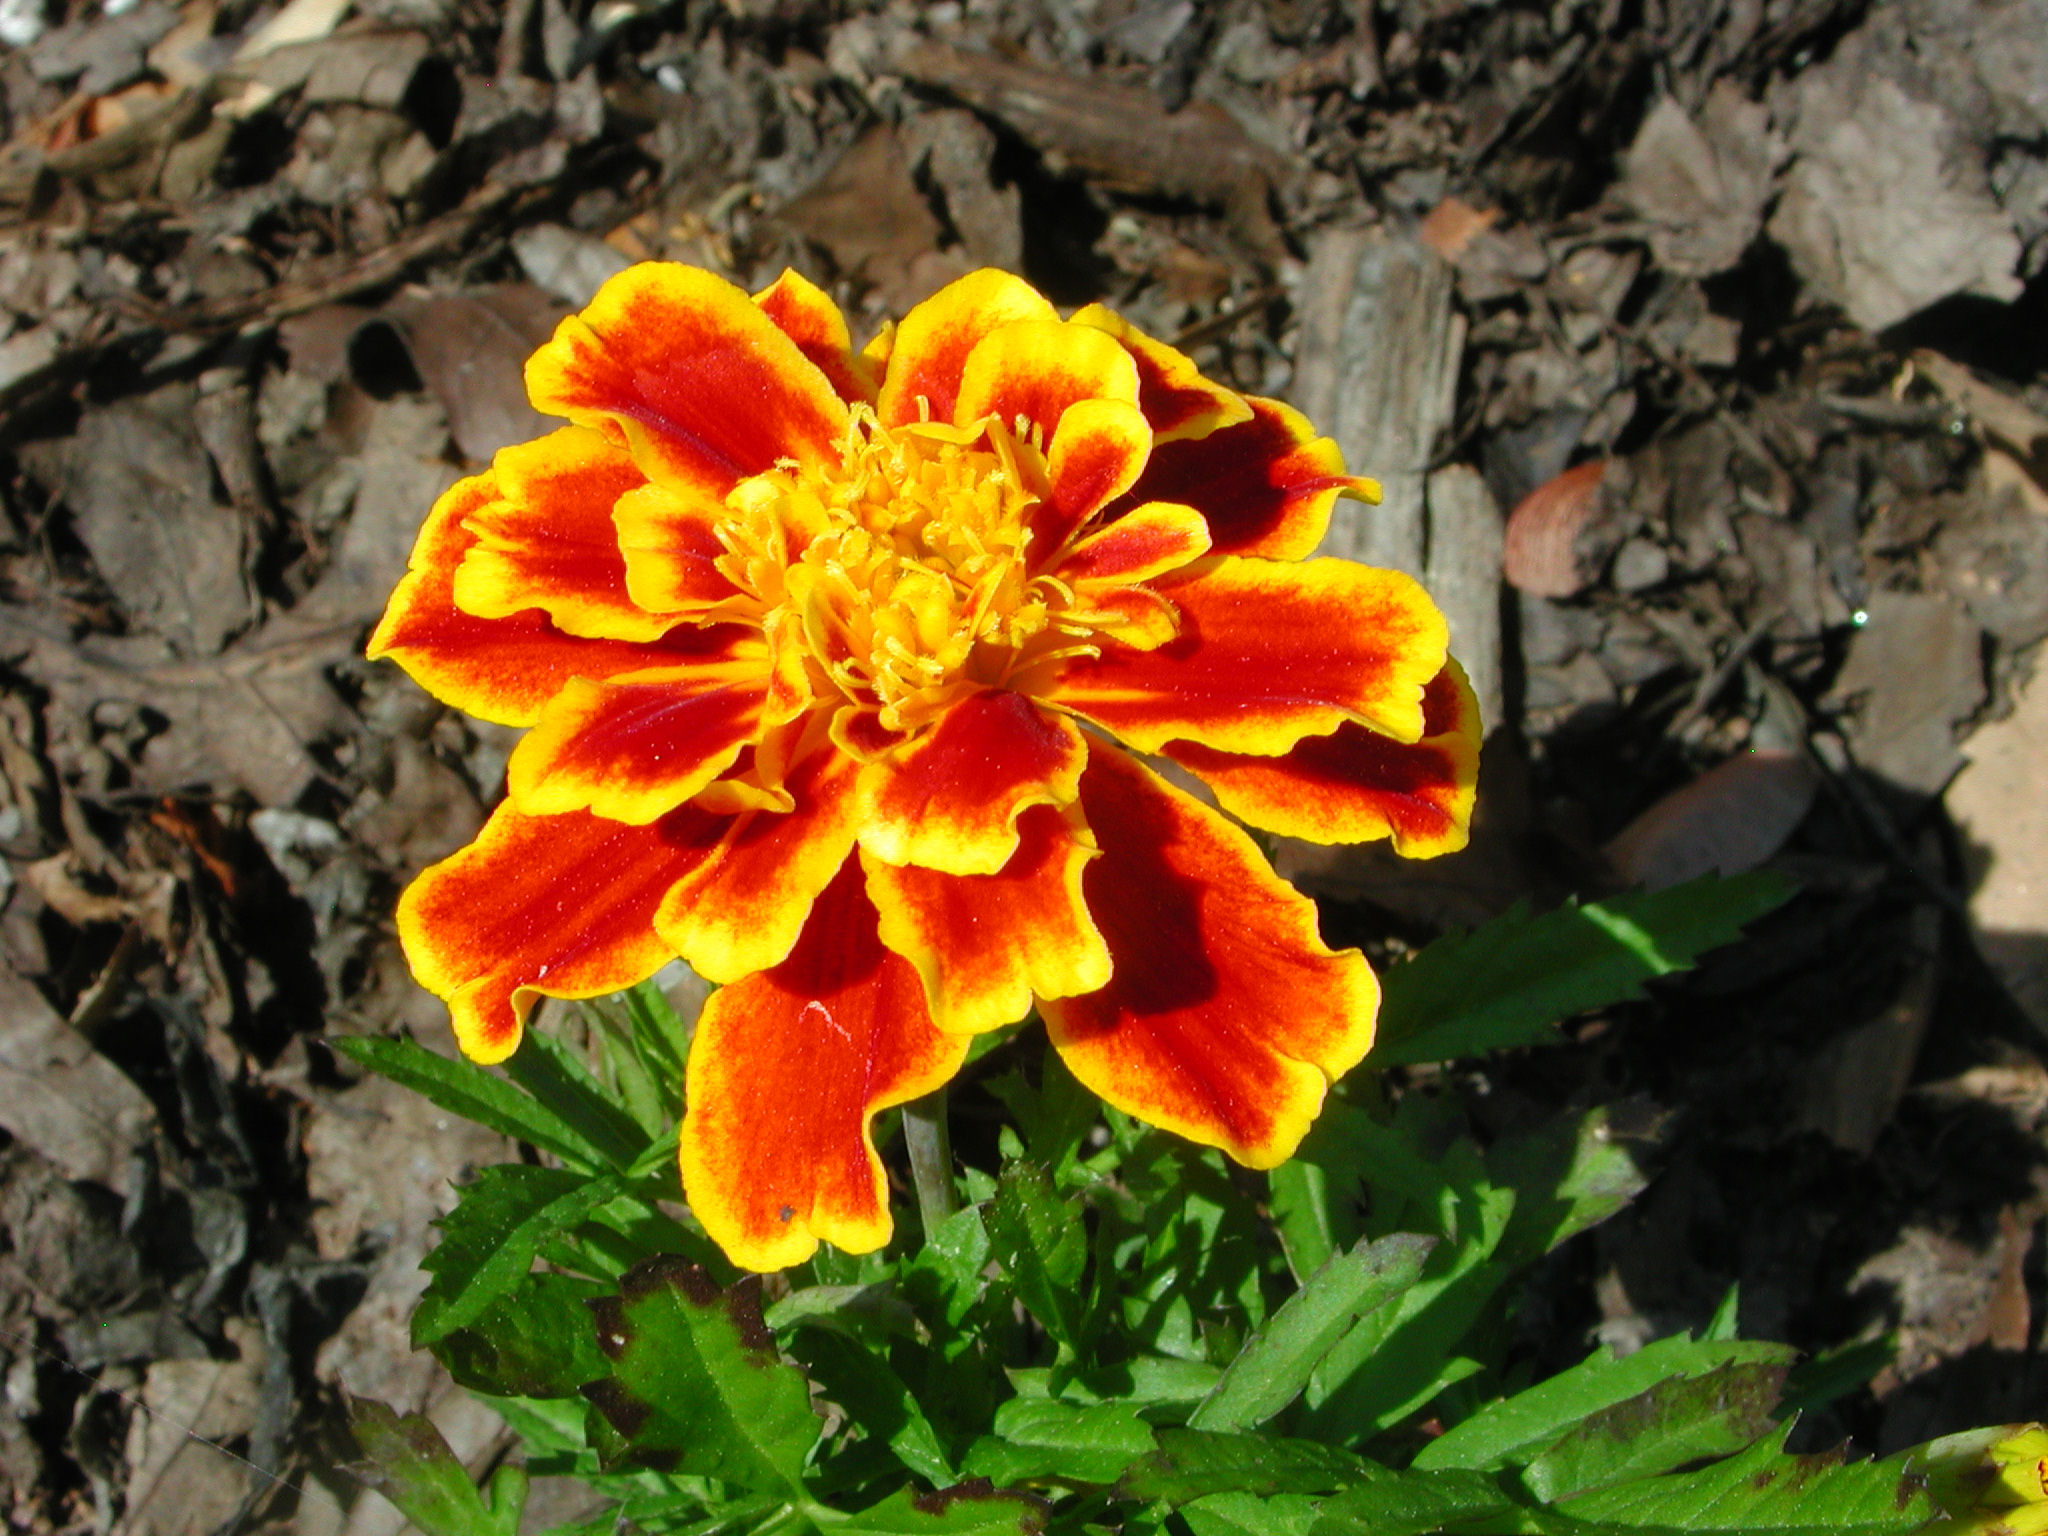 Flower of French Marigold